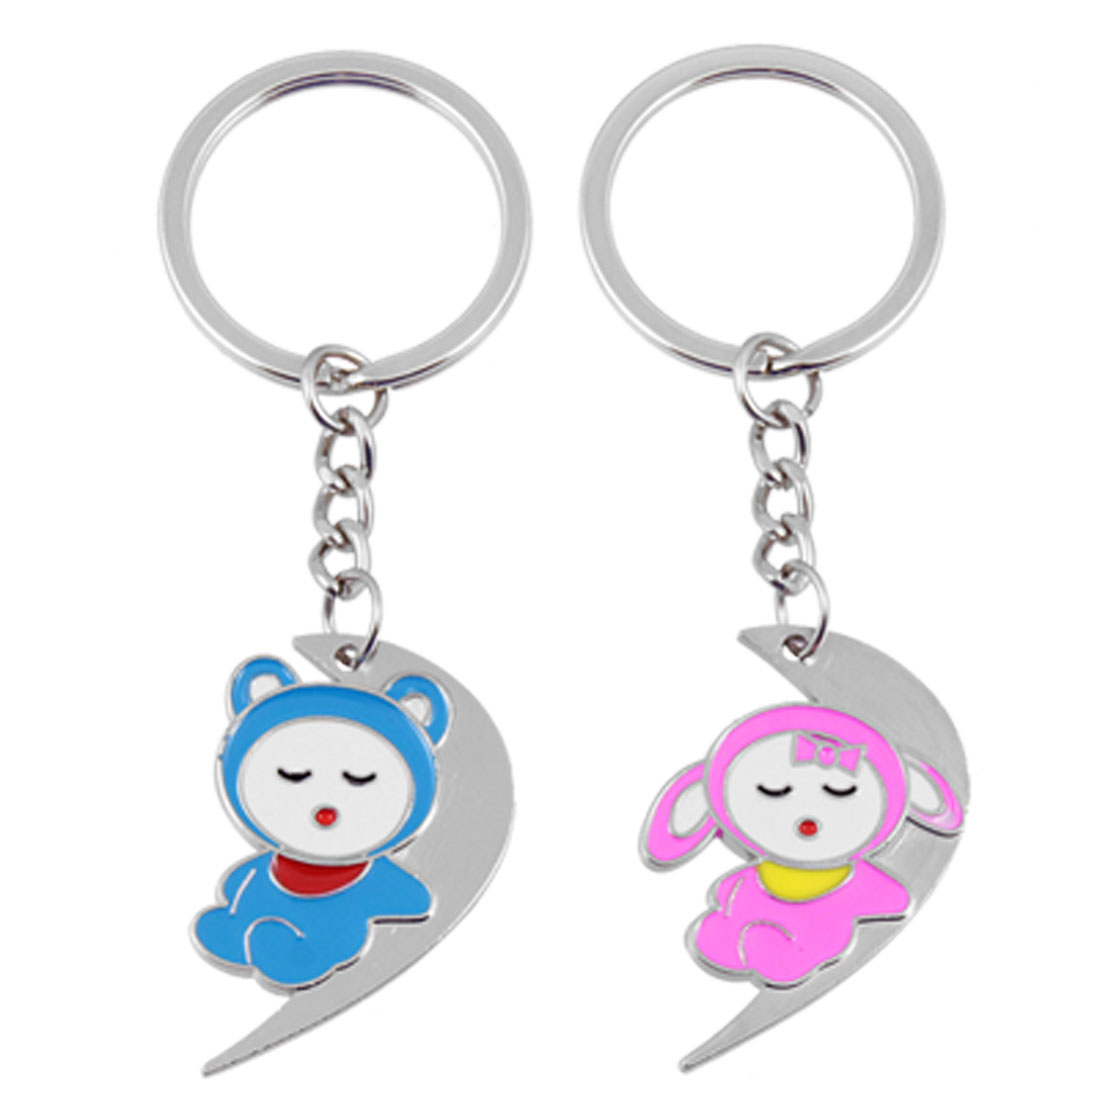 2 Pcs Lovers Figure Pendant Metal Keychain Key Chain